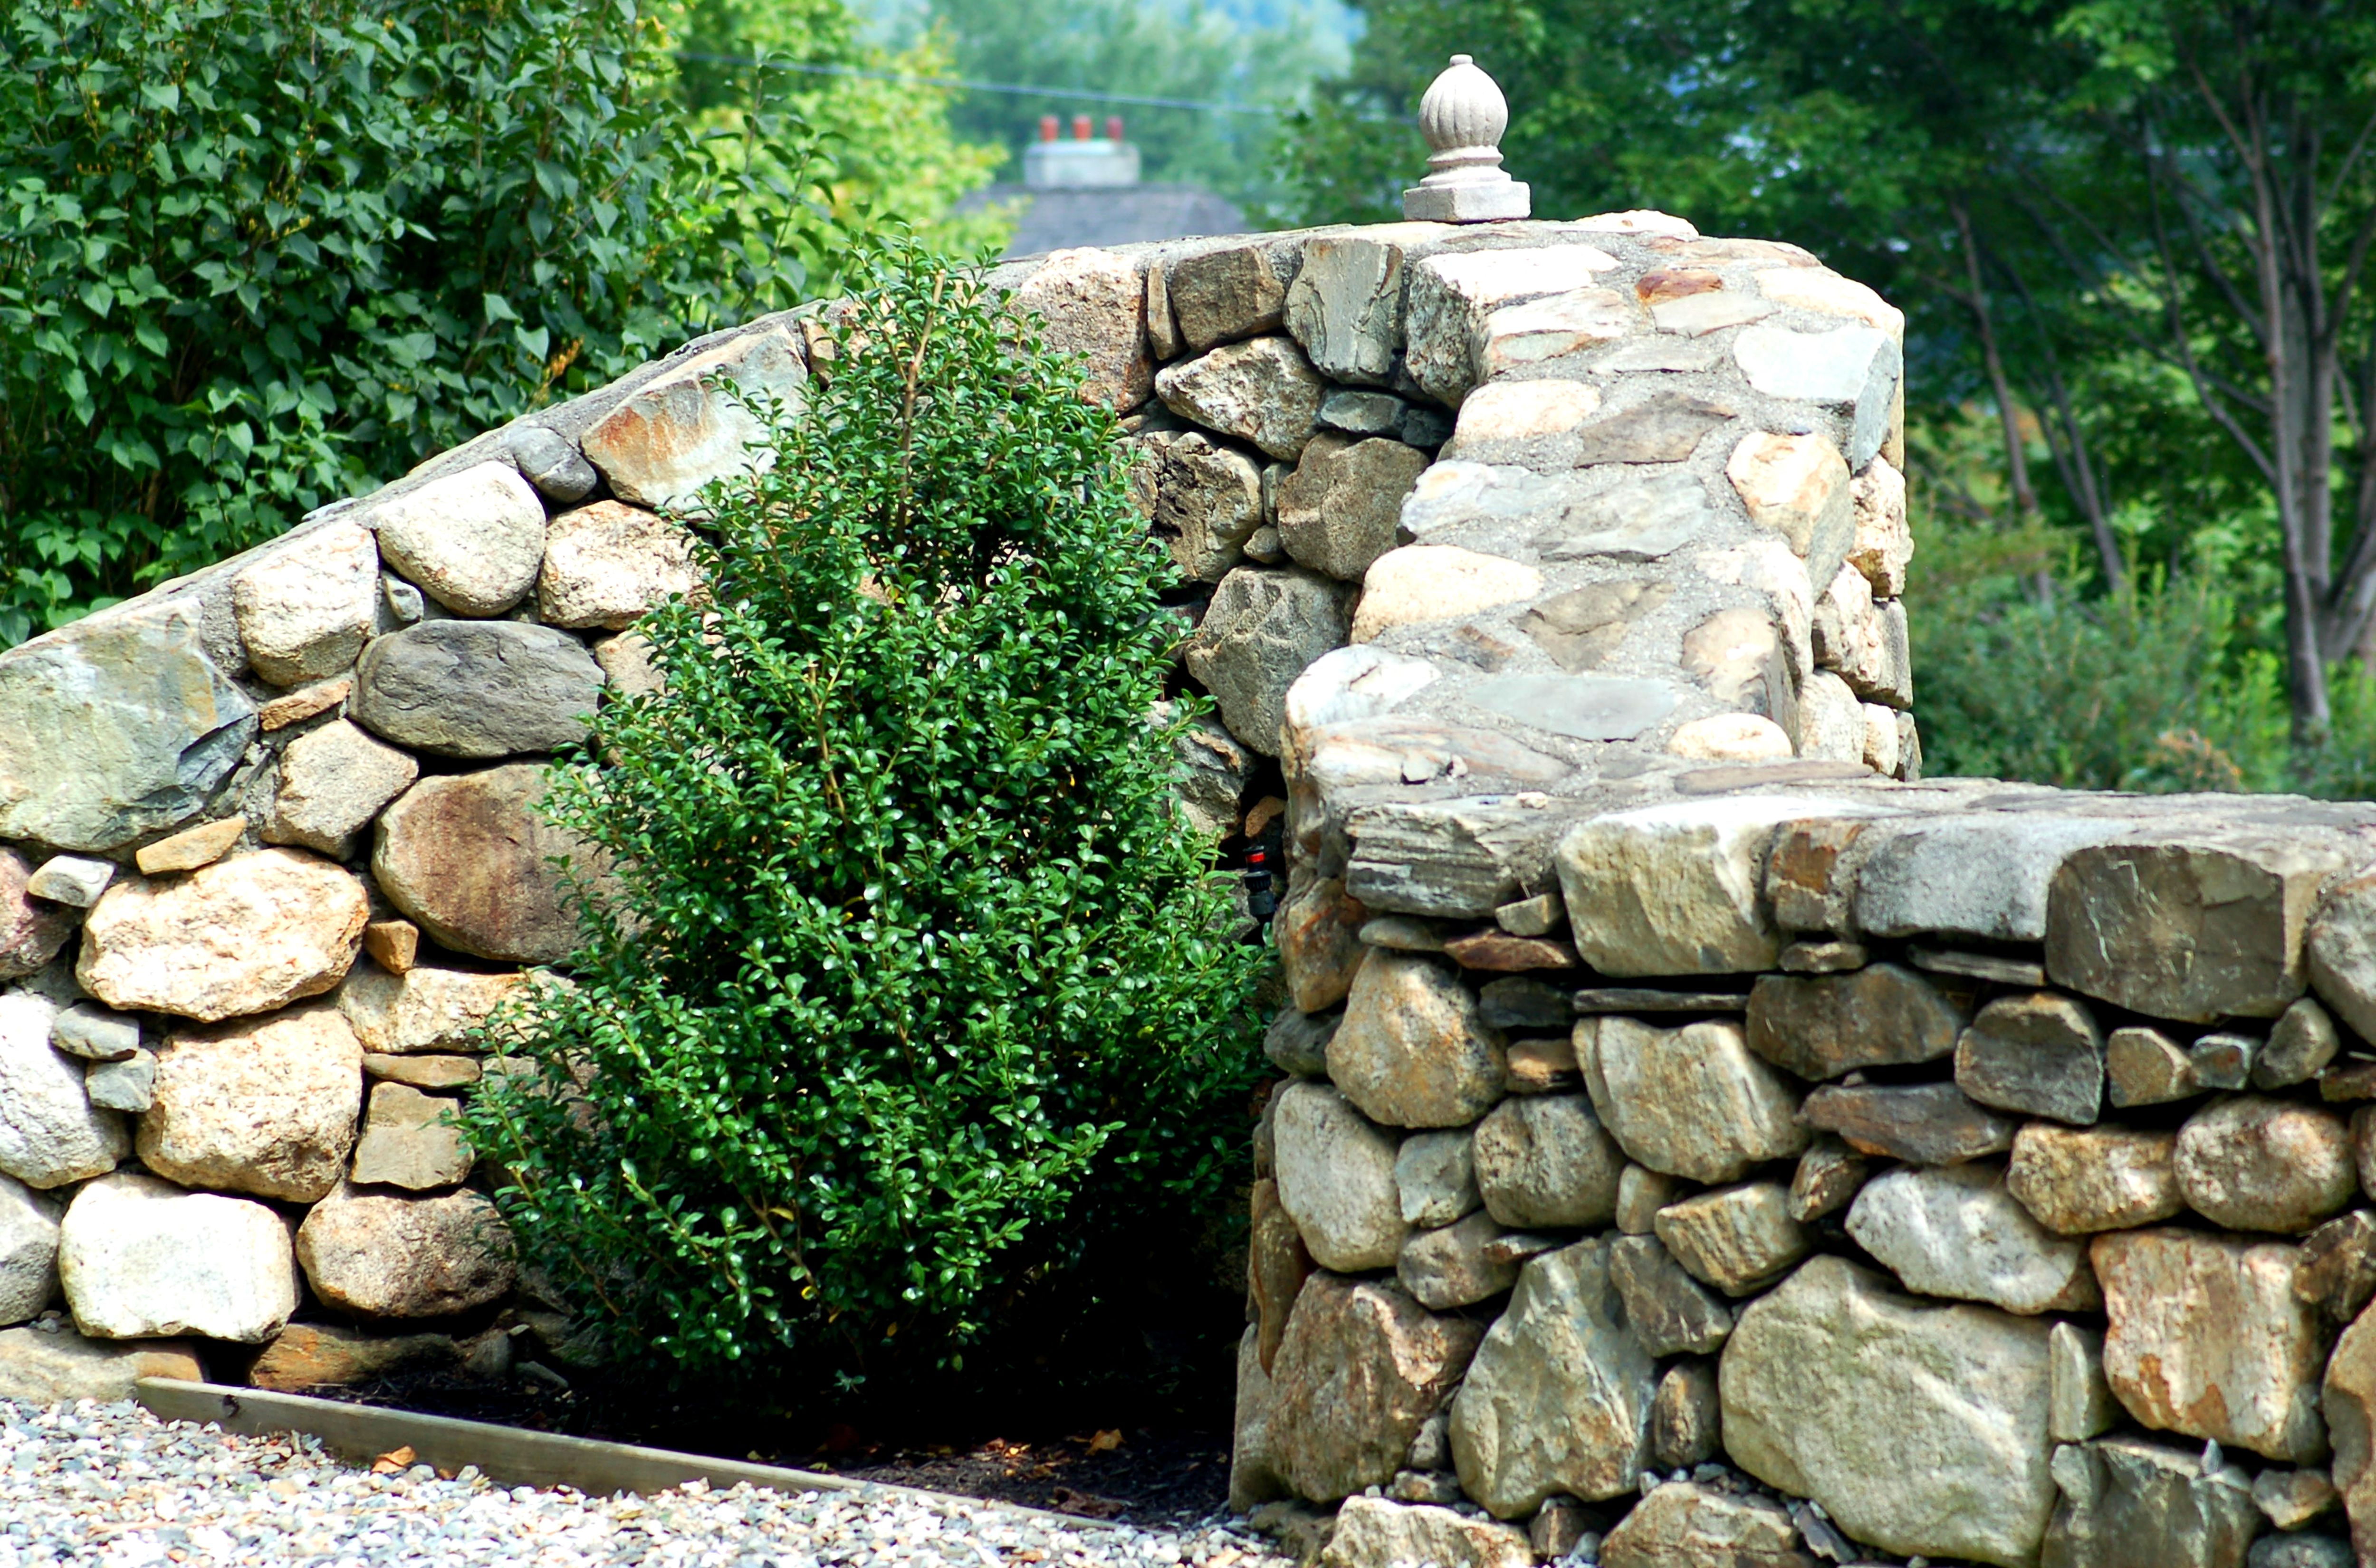 Insert a niche into your stone wall (image) to accommodate a shrub. The latter will soften the look.